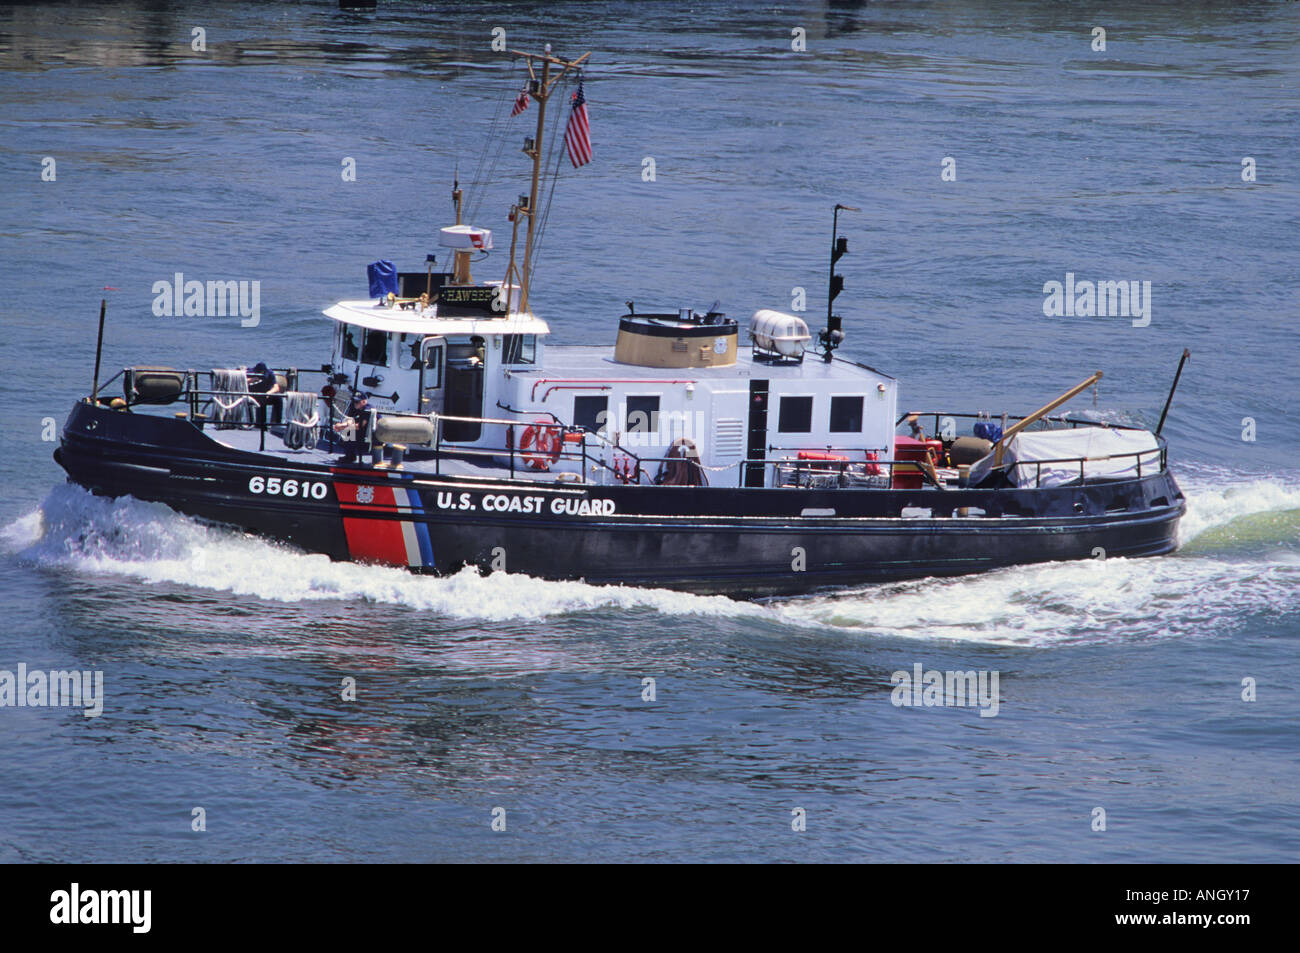 USA New York City US Coast Guard Boat on the East River Manhattan - Stock Image